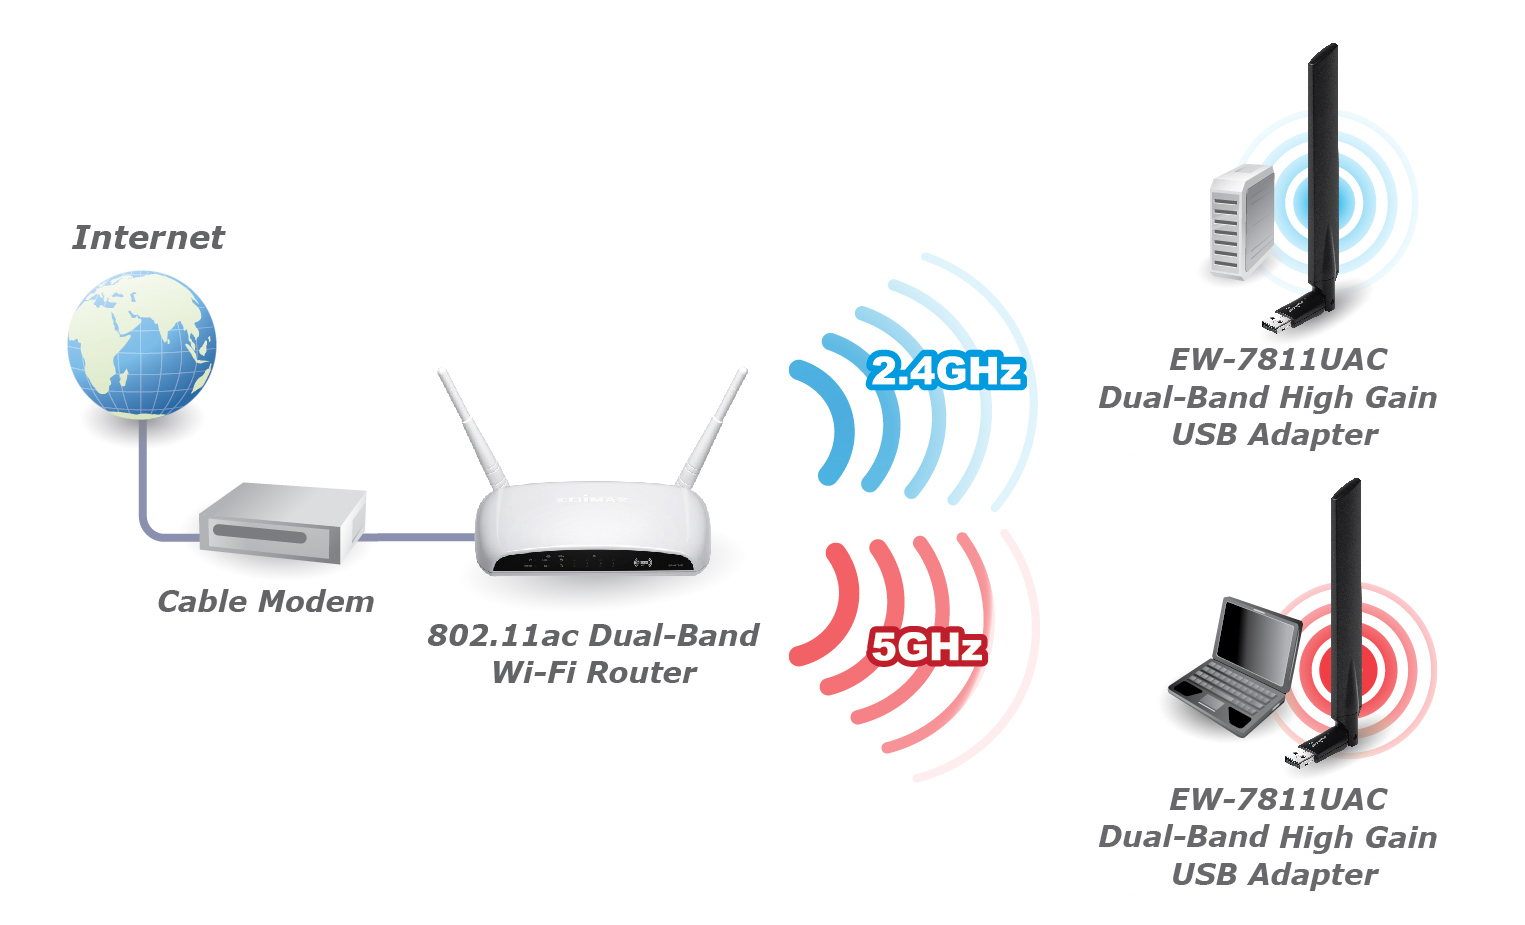 Edimax EW-7811UAC AC600 Wi-Fi Dual-Band High Gain USB Adapter EW-7811UAC_application_diagram.jpg